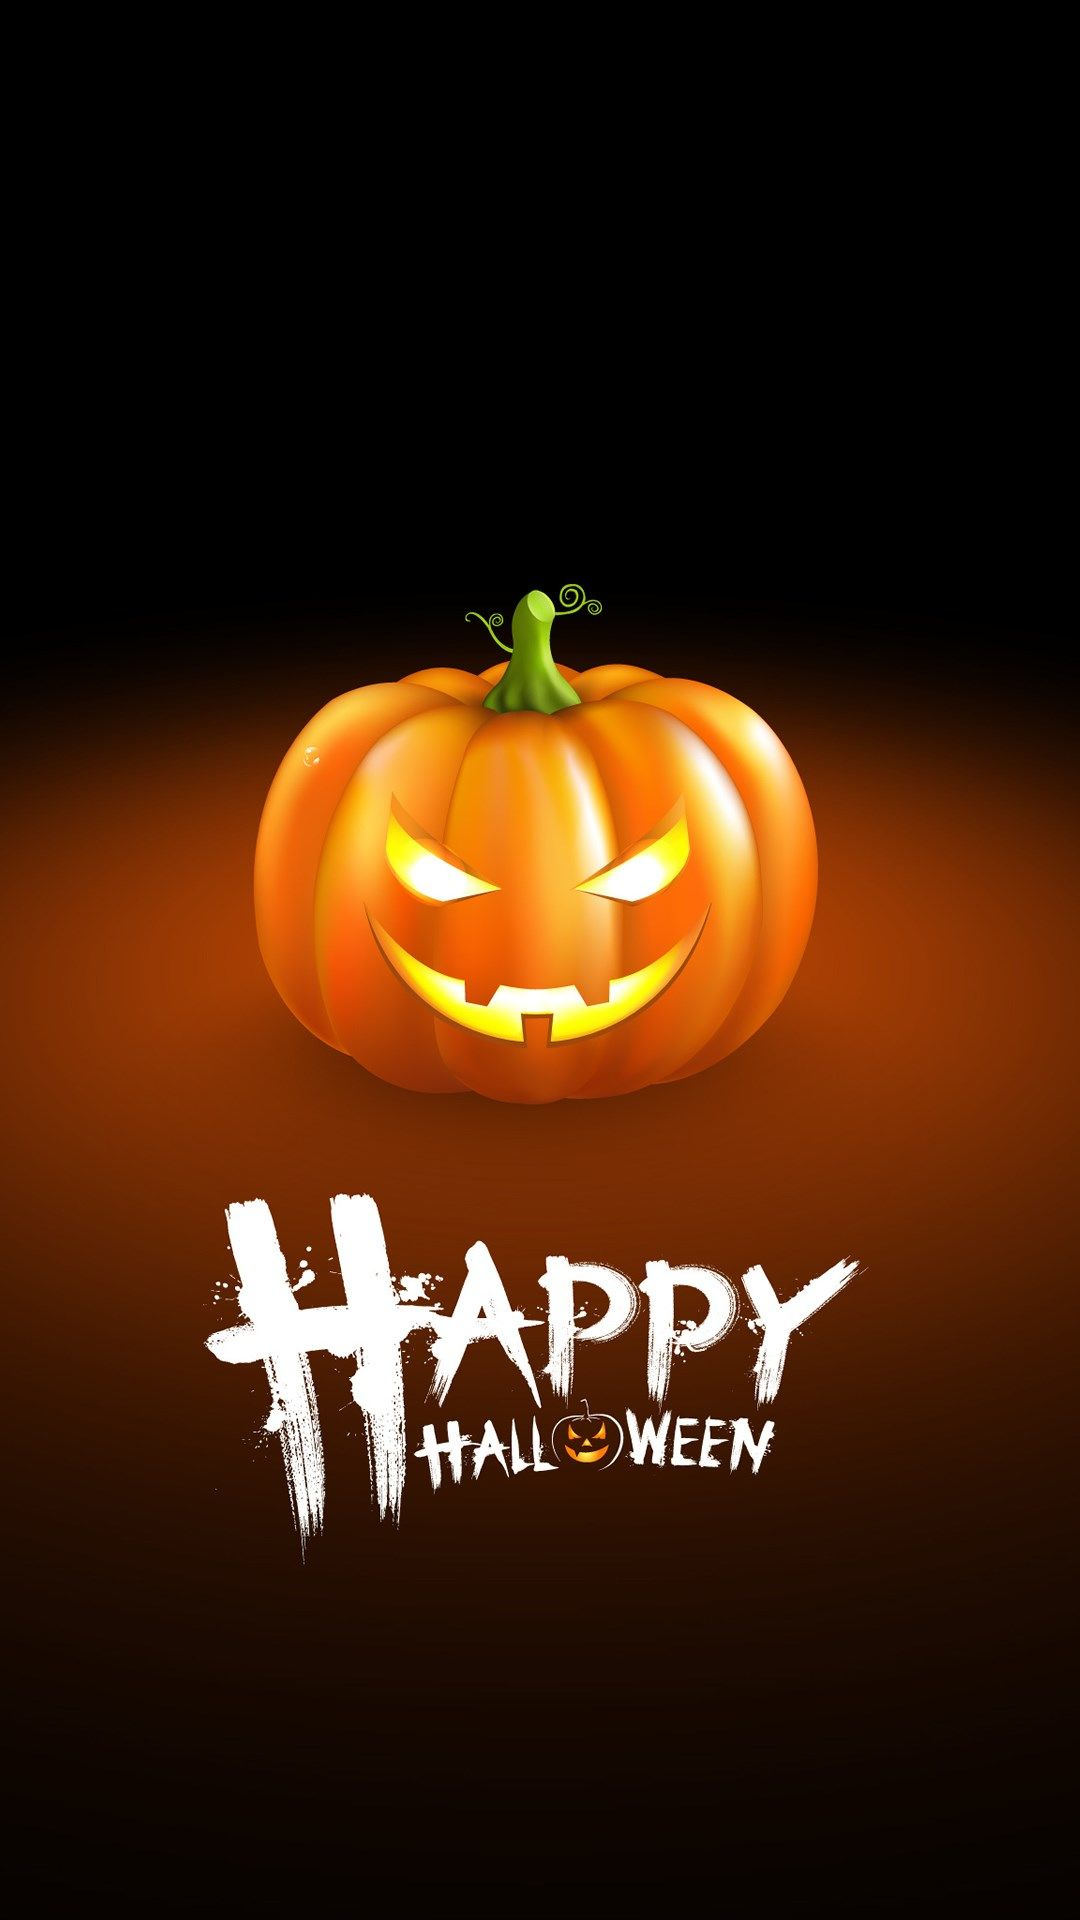 Happy Halloween Tap To See More Cute Halloween Wallpaper Mobile9 Halloween Wallpaper Pumpkin Wallpaper Halloween Wallpaper Iphone